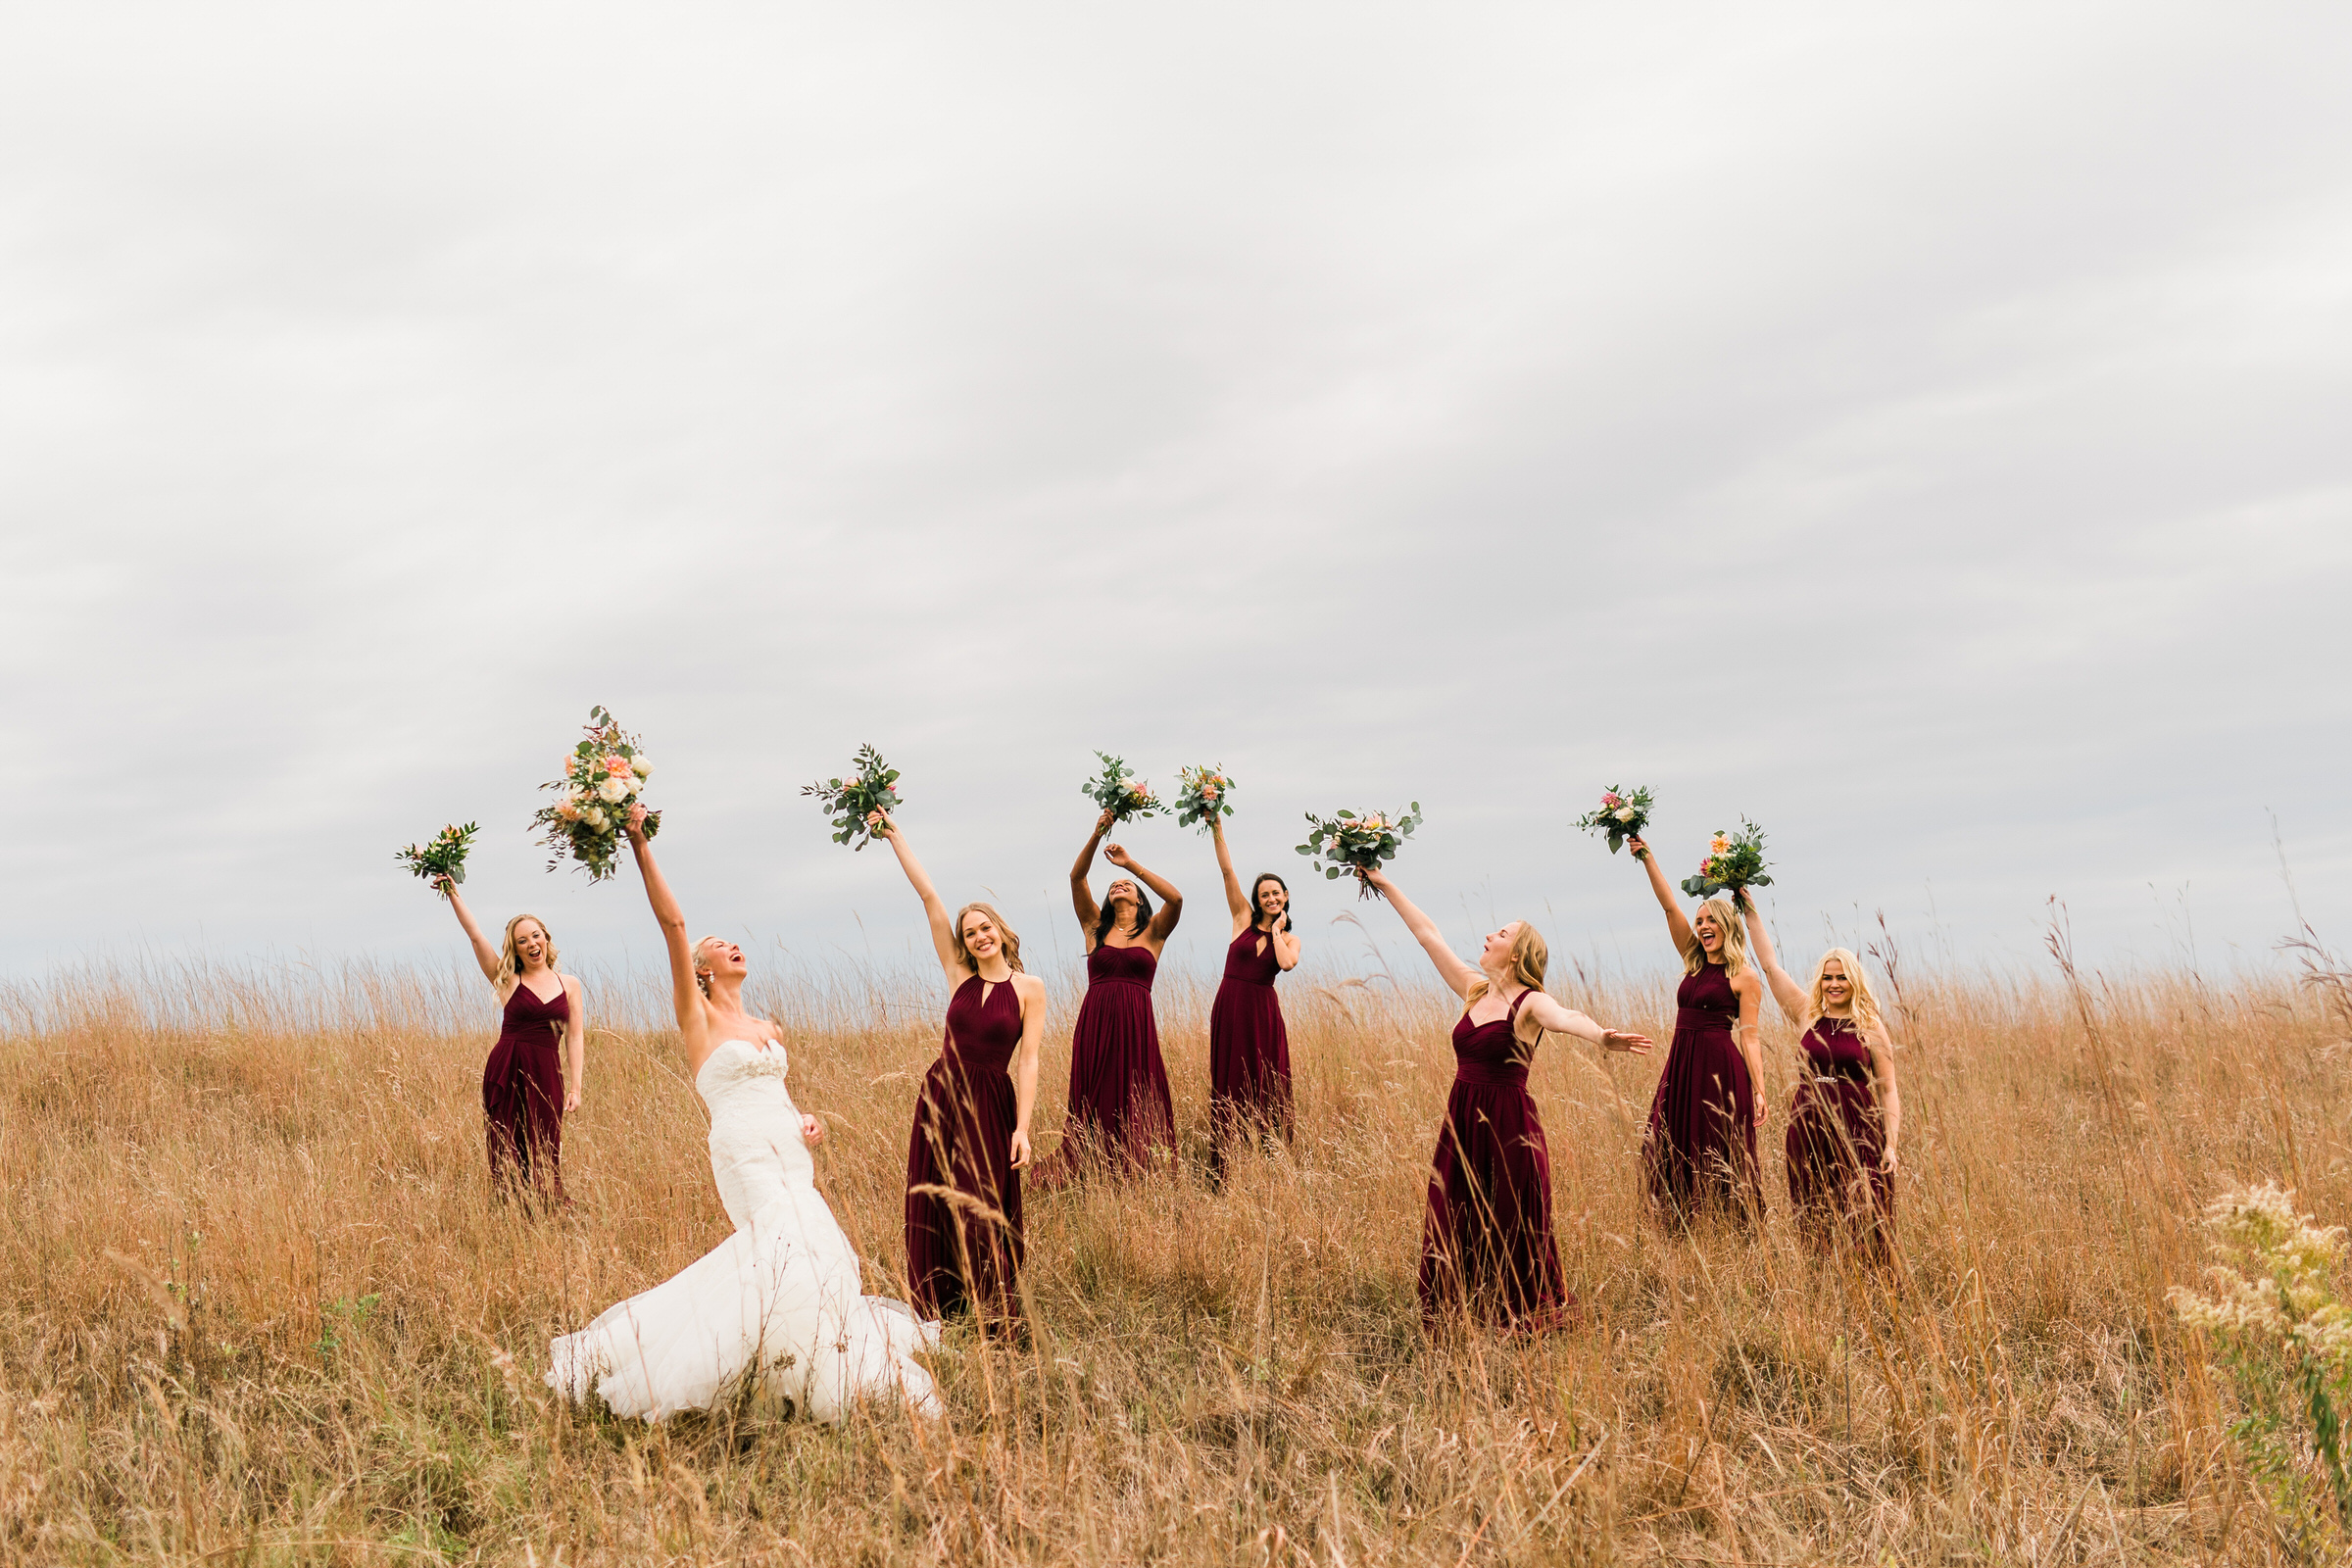 Bridesmaids in burgundy sleeveless gowns in grass field - photographed by M an J Studios - Estonia